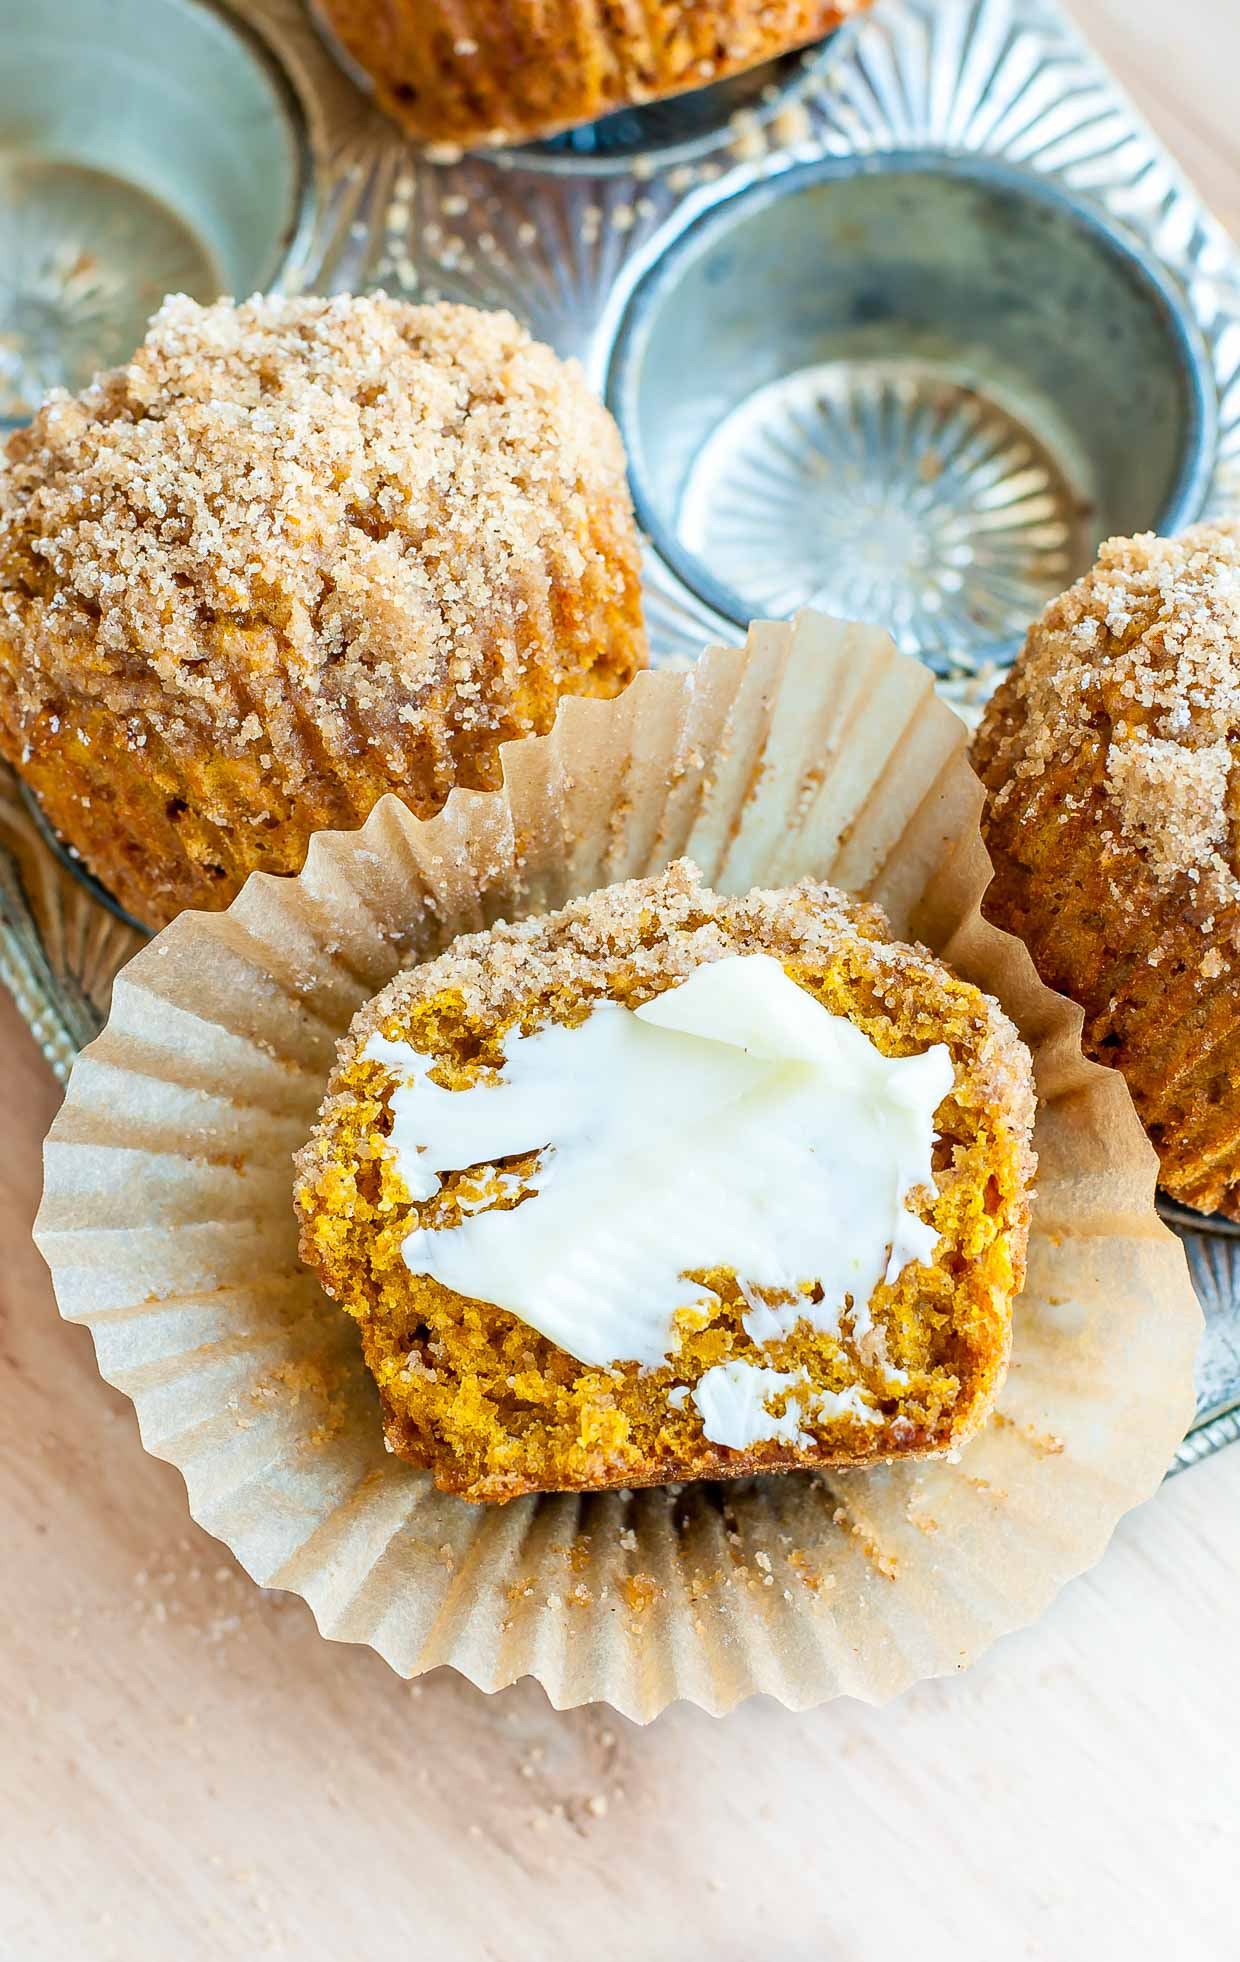 Delicious Pumpkin Spice Streusel Muffins!